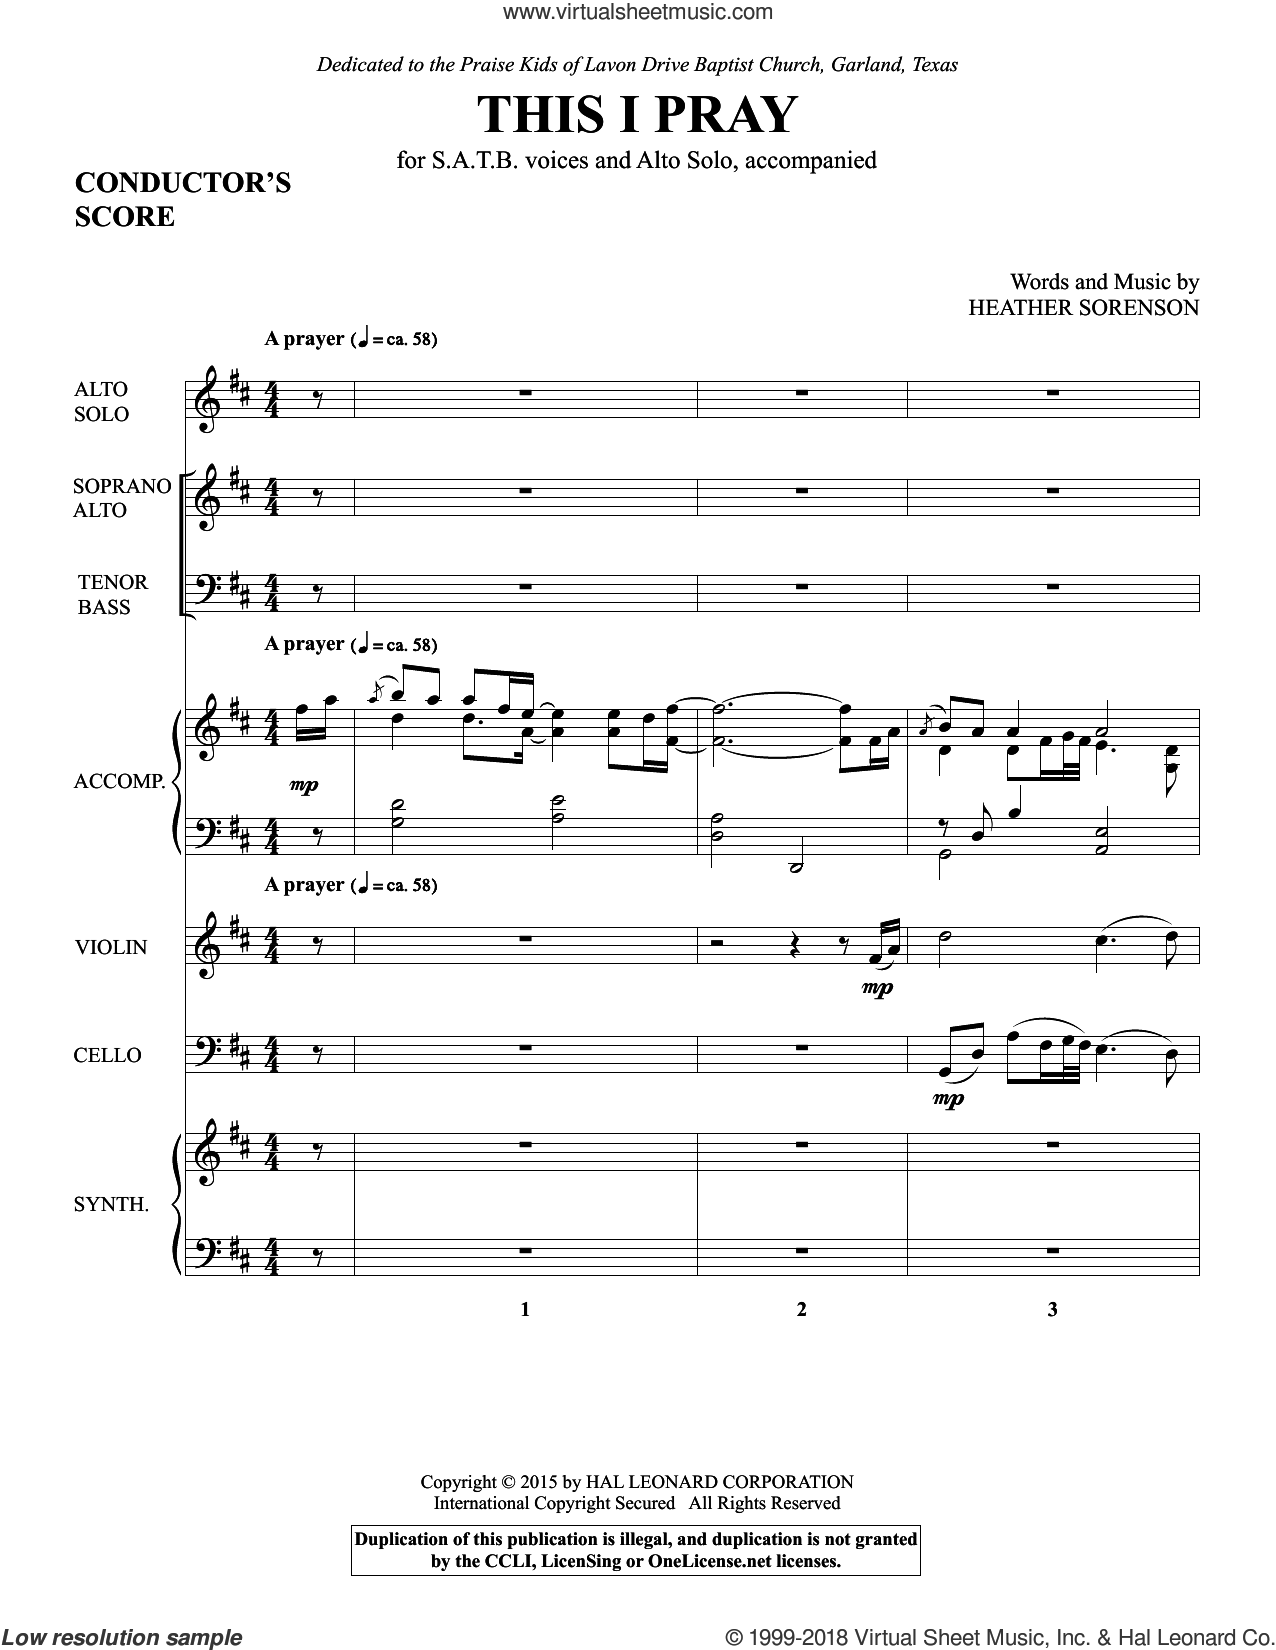 This I Pray (COMPLETE) sheet music for orchestra/band by Heather Sorenson, intermediate skill level